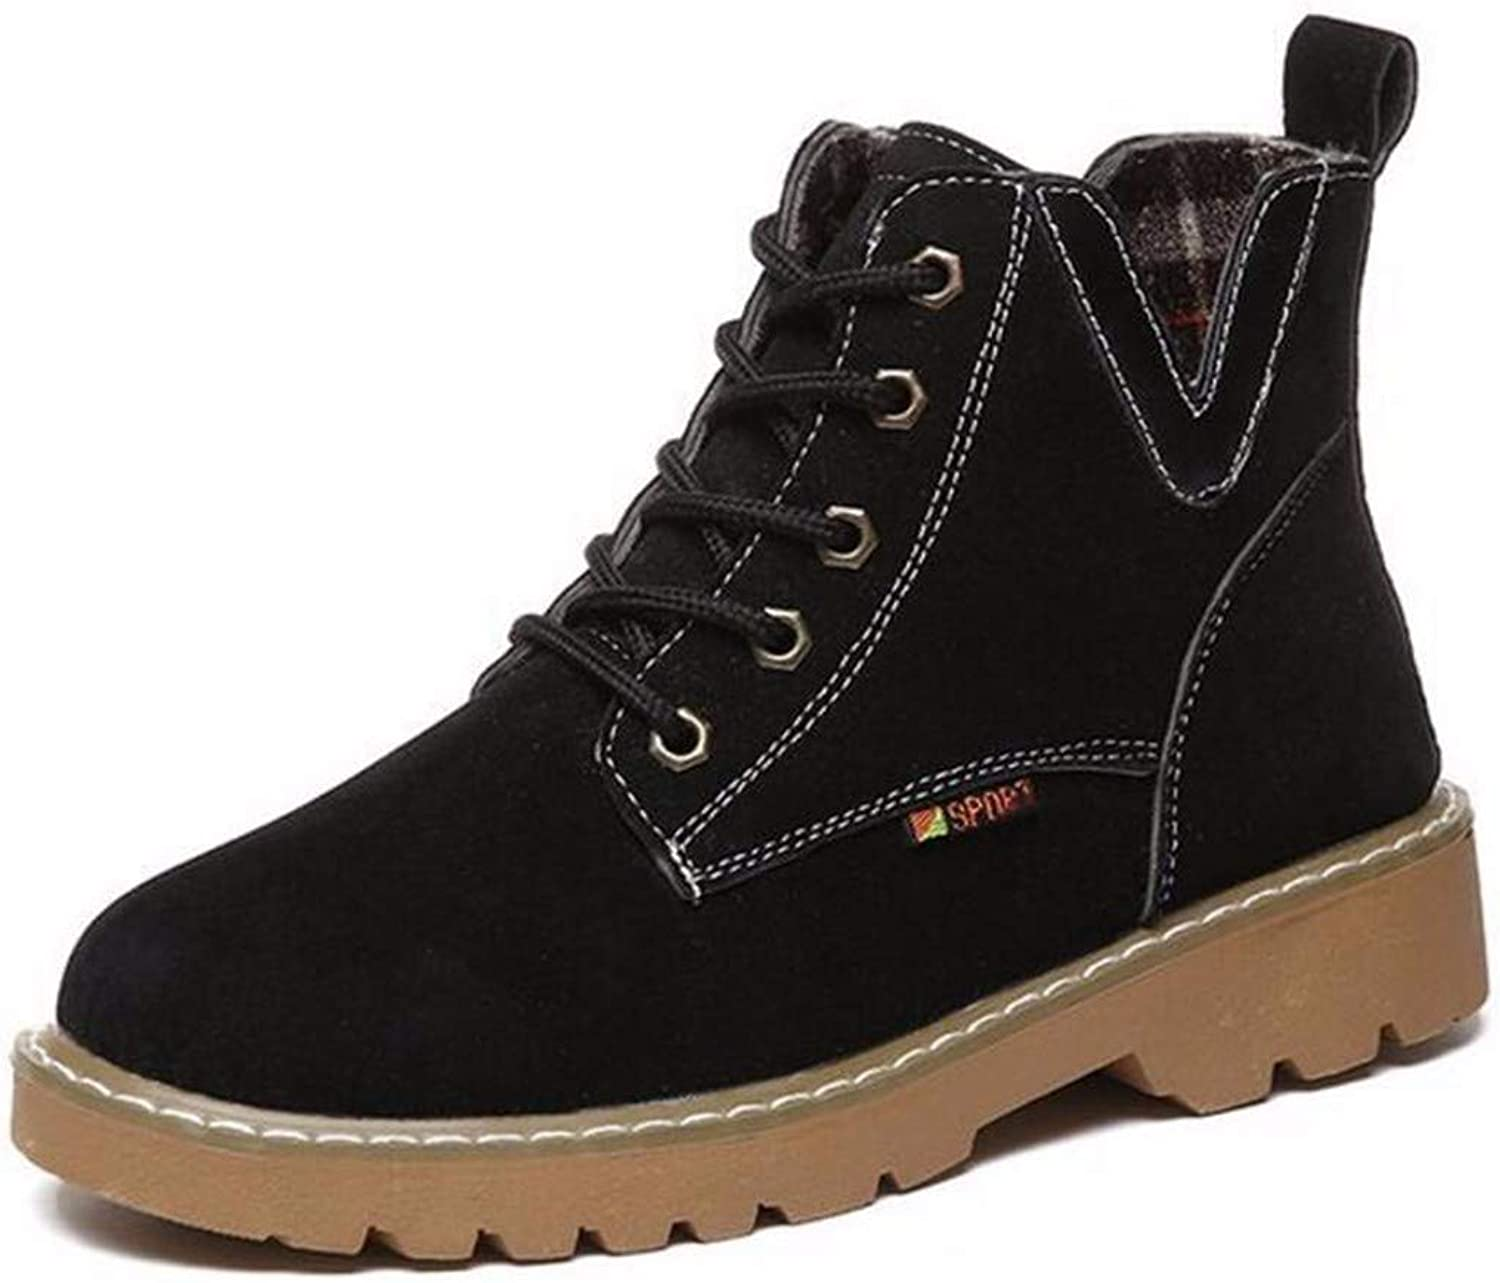 Martin Boots, Women's Boots, High Boots, Rough and Flat Spring and Autumn Locomotives.